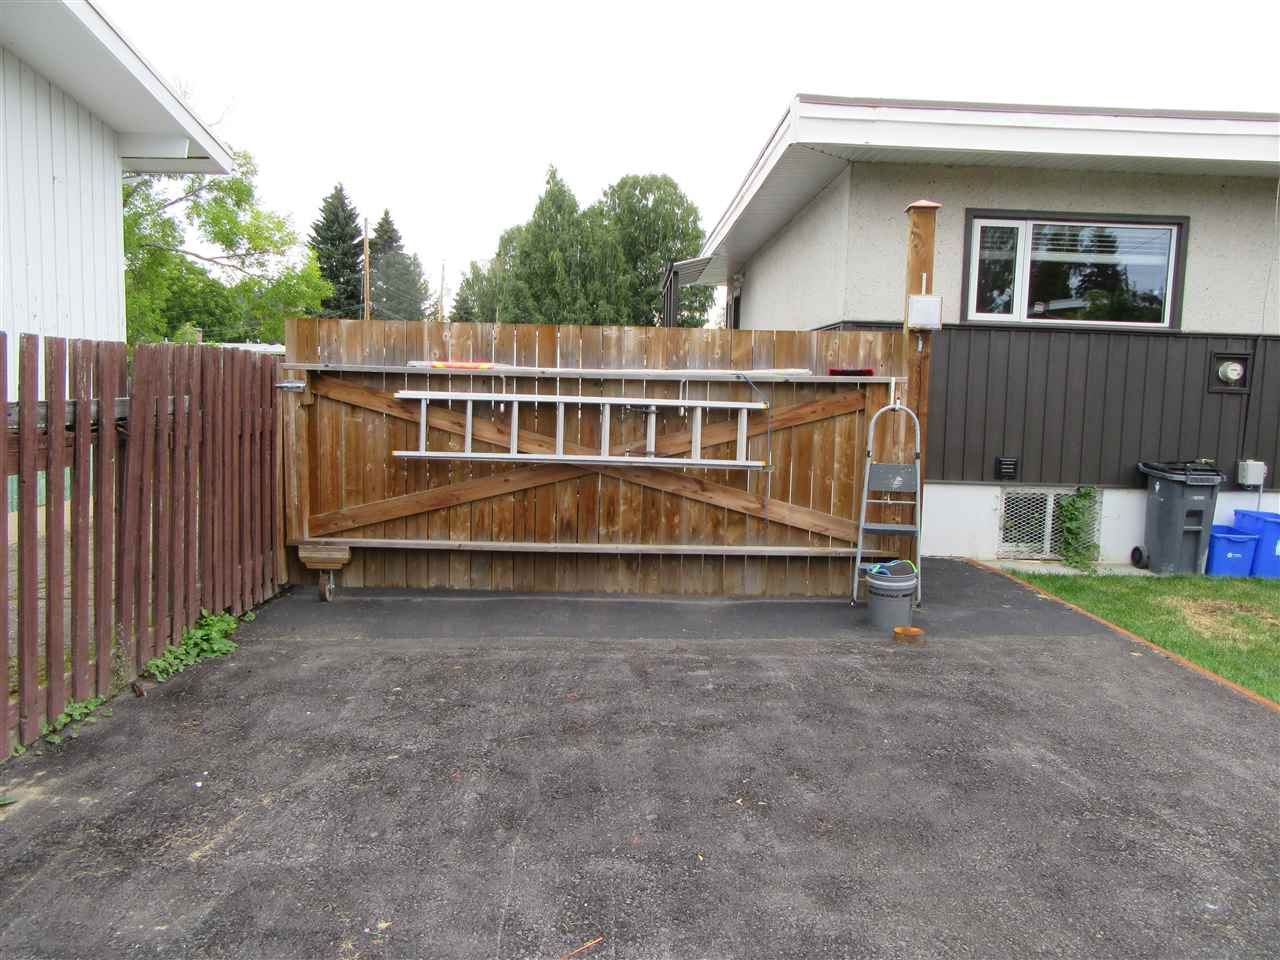 """Photo 7: Photos: 121 FREEMAN Street in Prince George: Nechako View House for sale in """"NECHAKO"""" (PG City Central (Zone 72))  : MLS®# R2493268"""